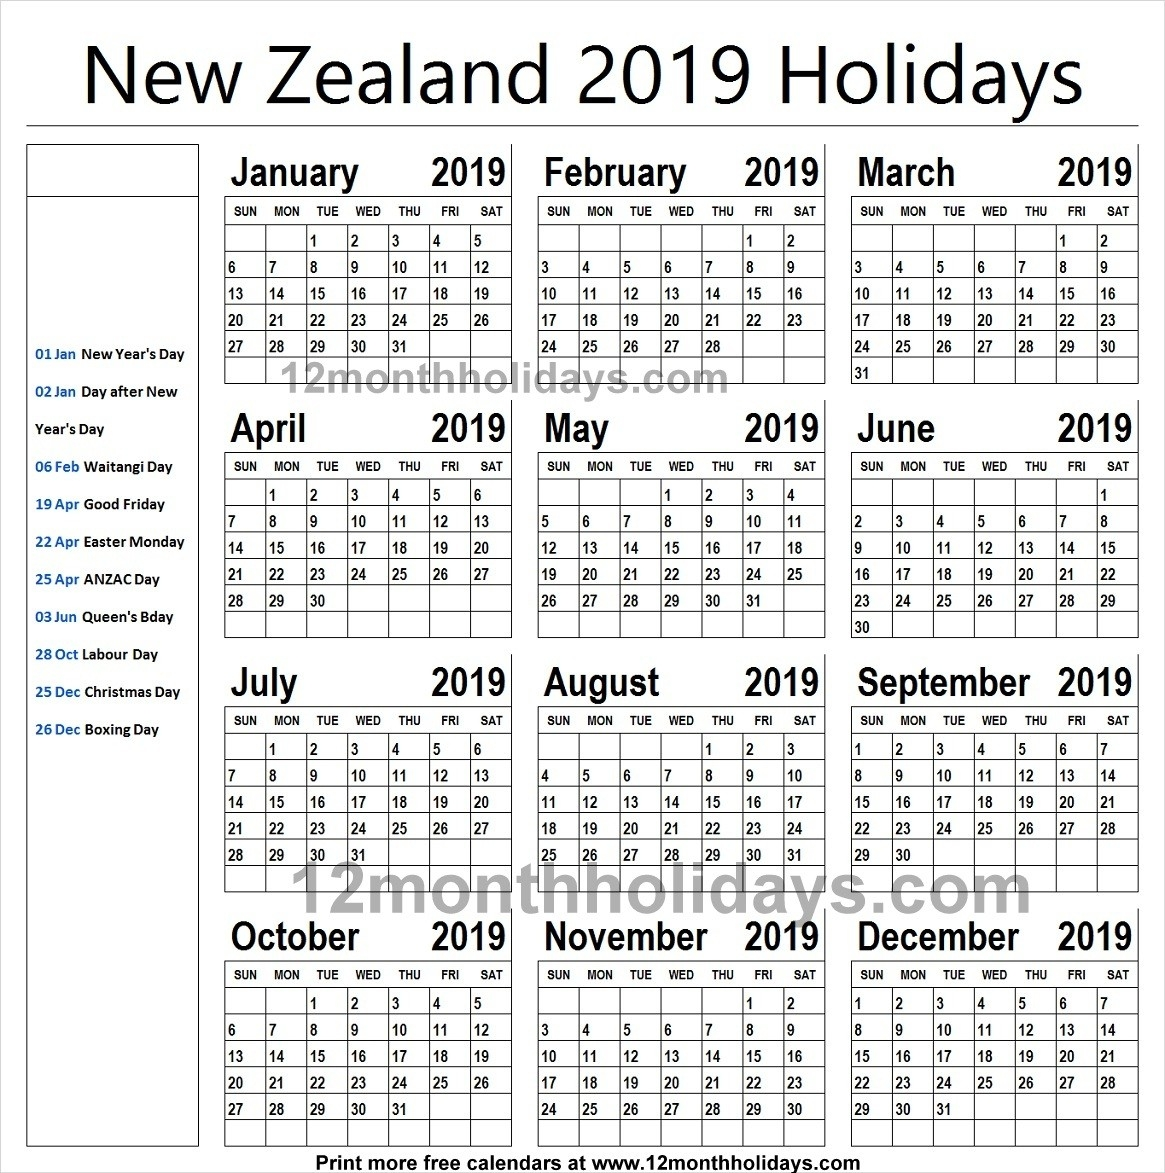 New Zealand School Holidays 2019 Calendar | New Zealand Calendar-School Holidays Nz Calendar